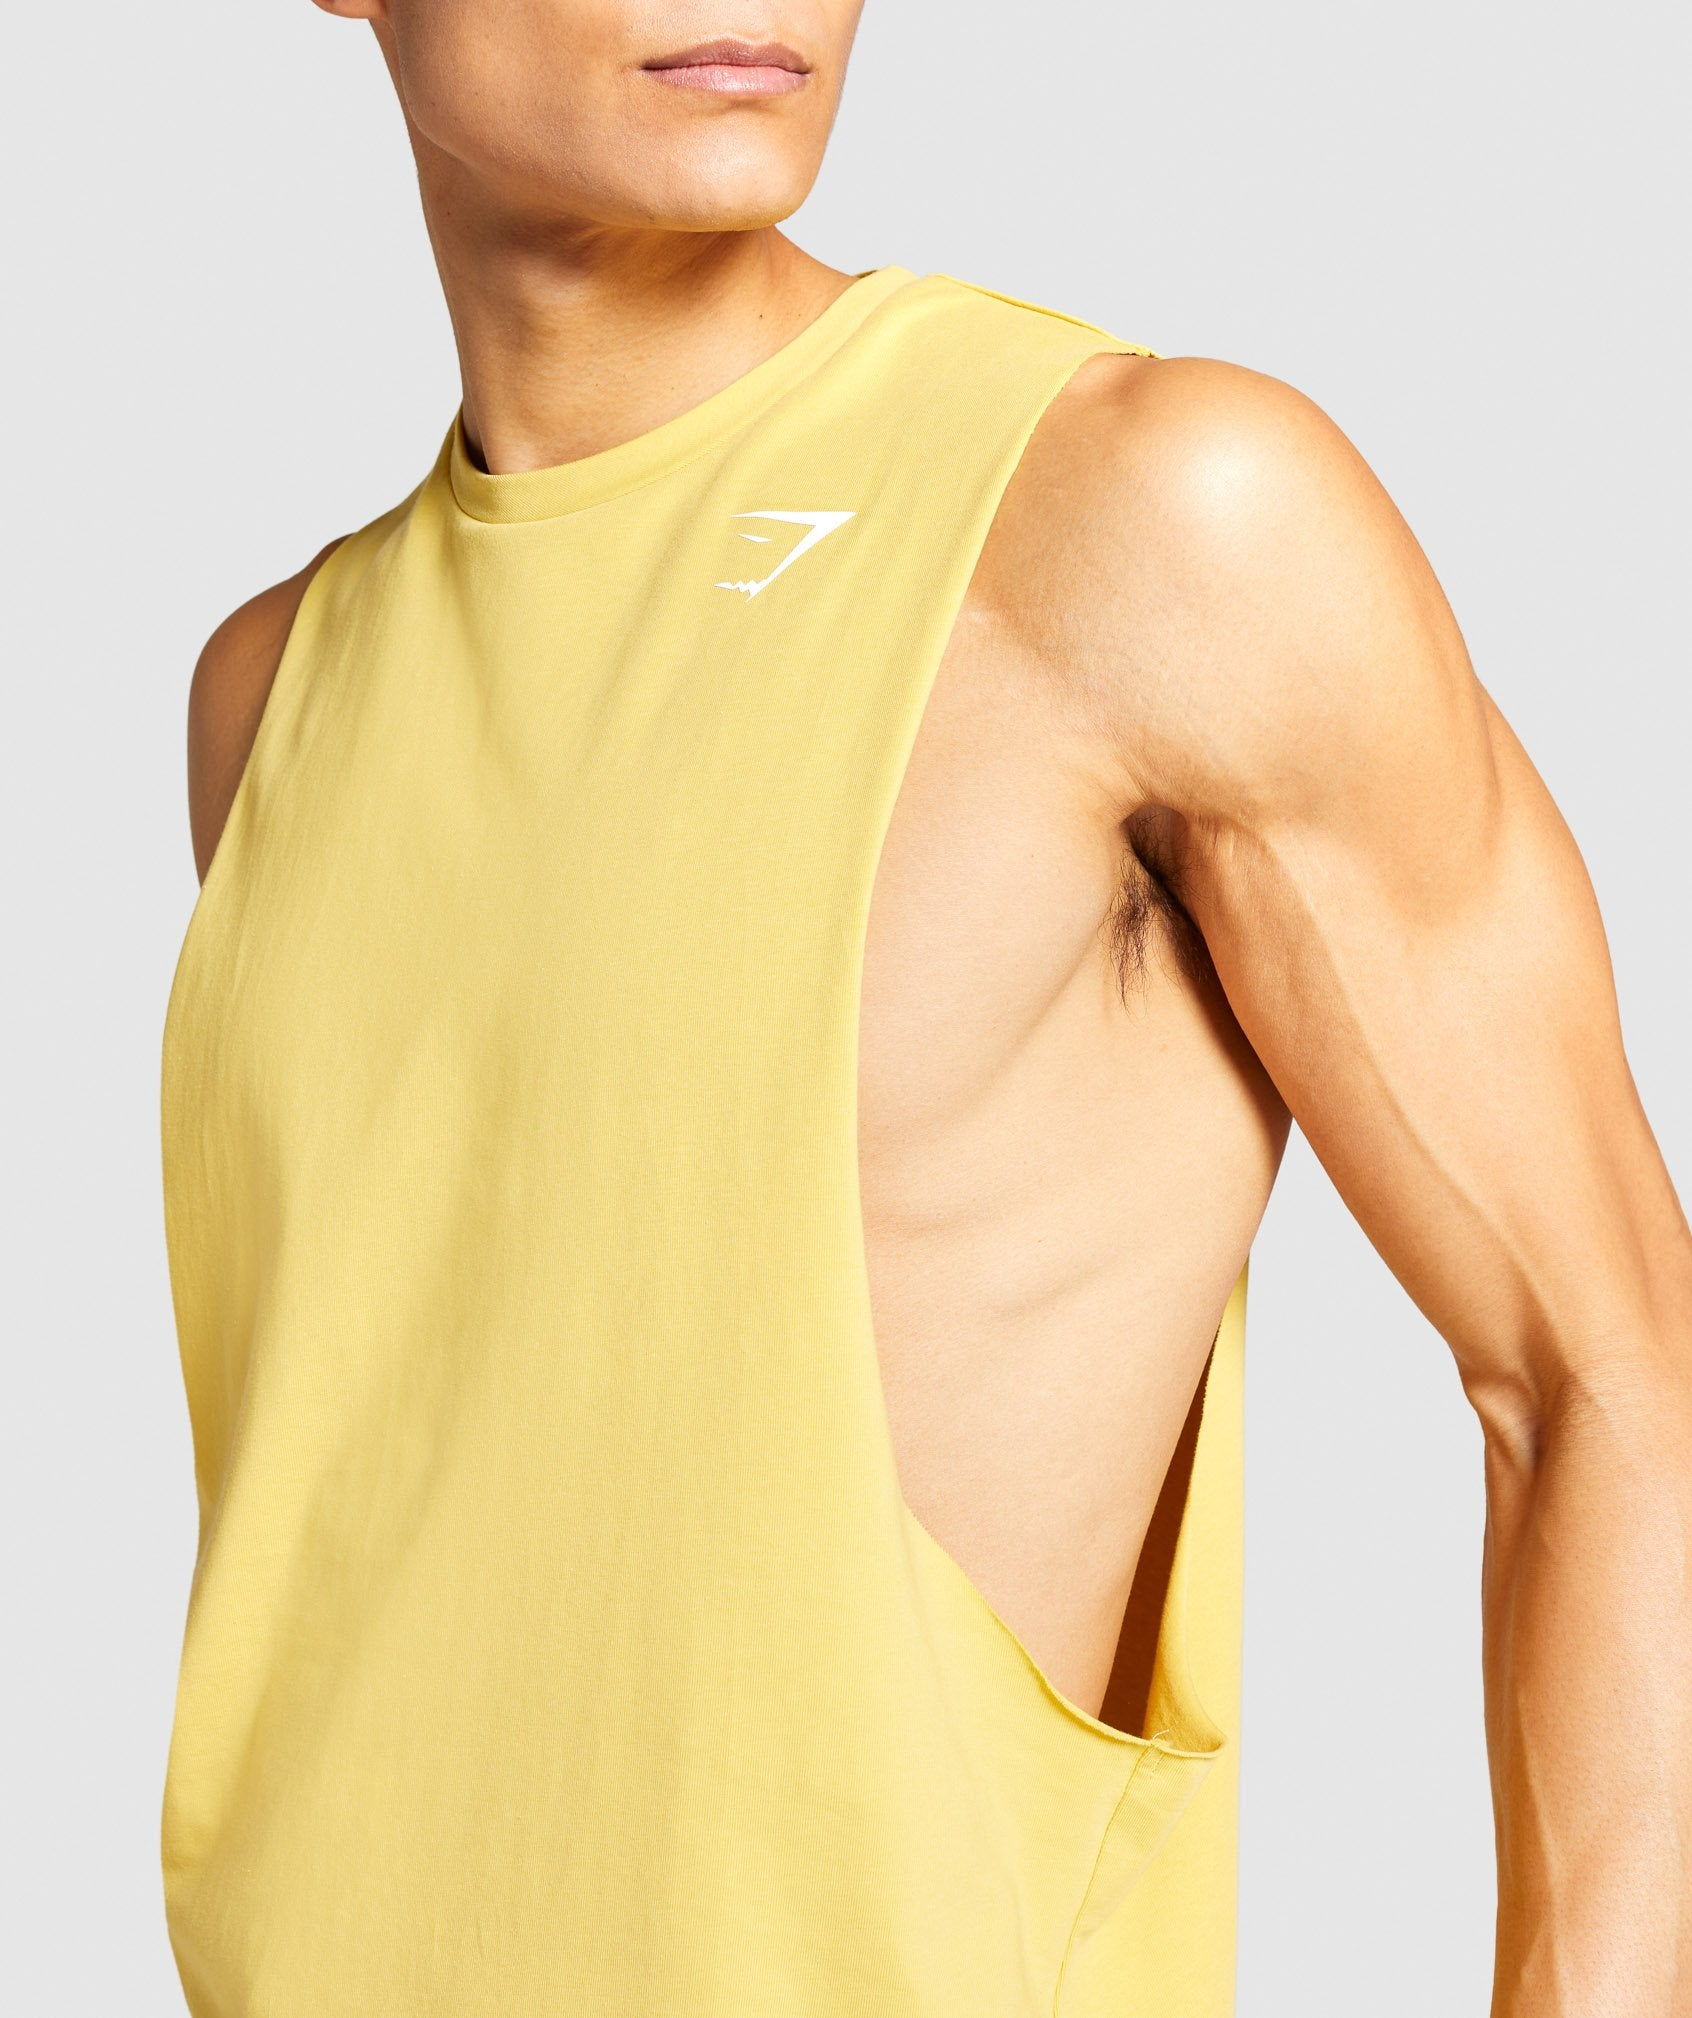 Classier: Buy Gymshark Critical Drop Arm Tank - Yellow - Gymshark